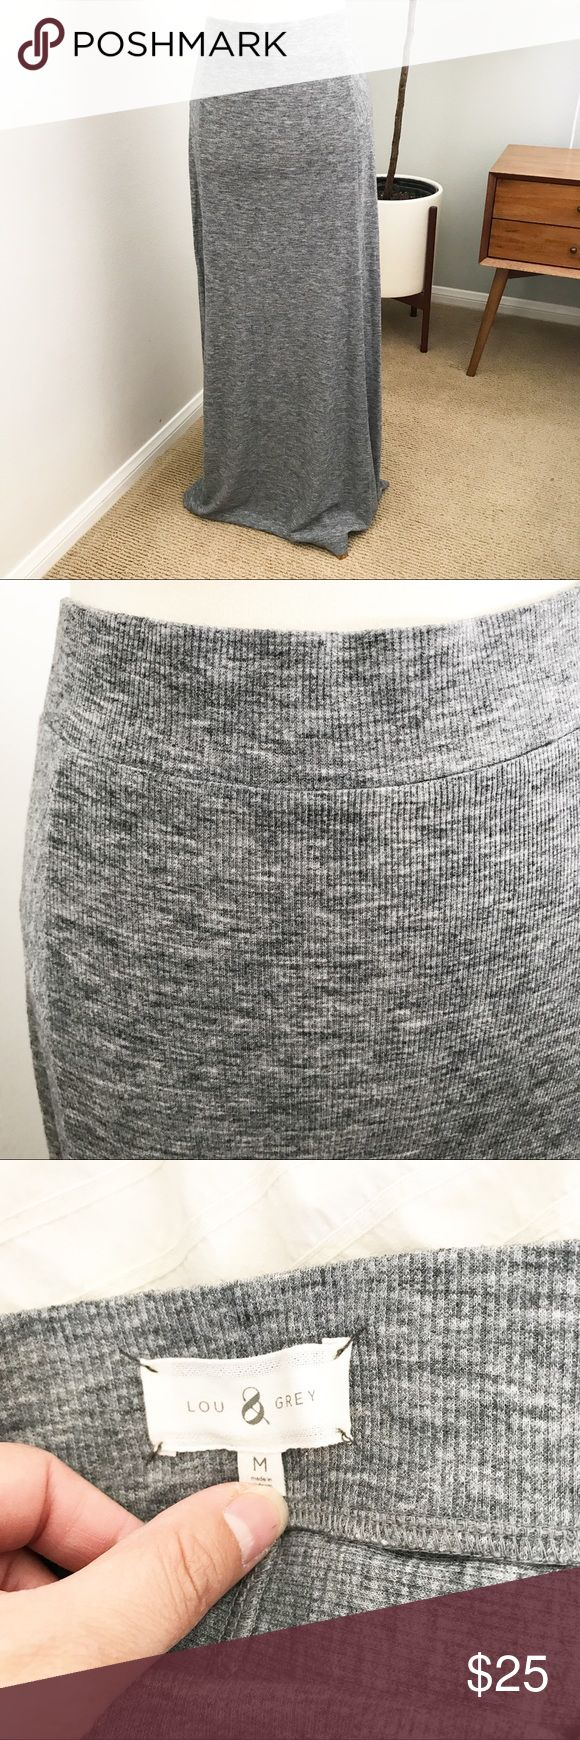 Lou & Grey micro stripe Maxi skirt size M Lou & Grey micro stripe Maxi skirt size M. Perfect for any casual occasion. Long float great for beach wear. Bundle and save ! Lou & Grey Skirts Maxi